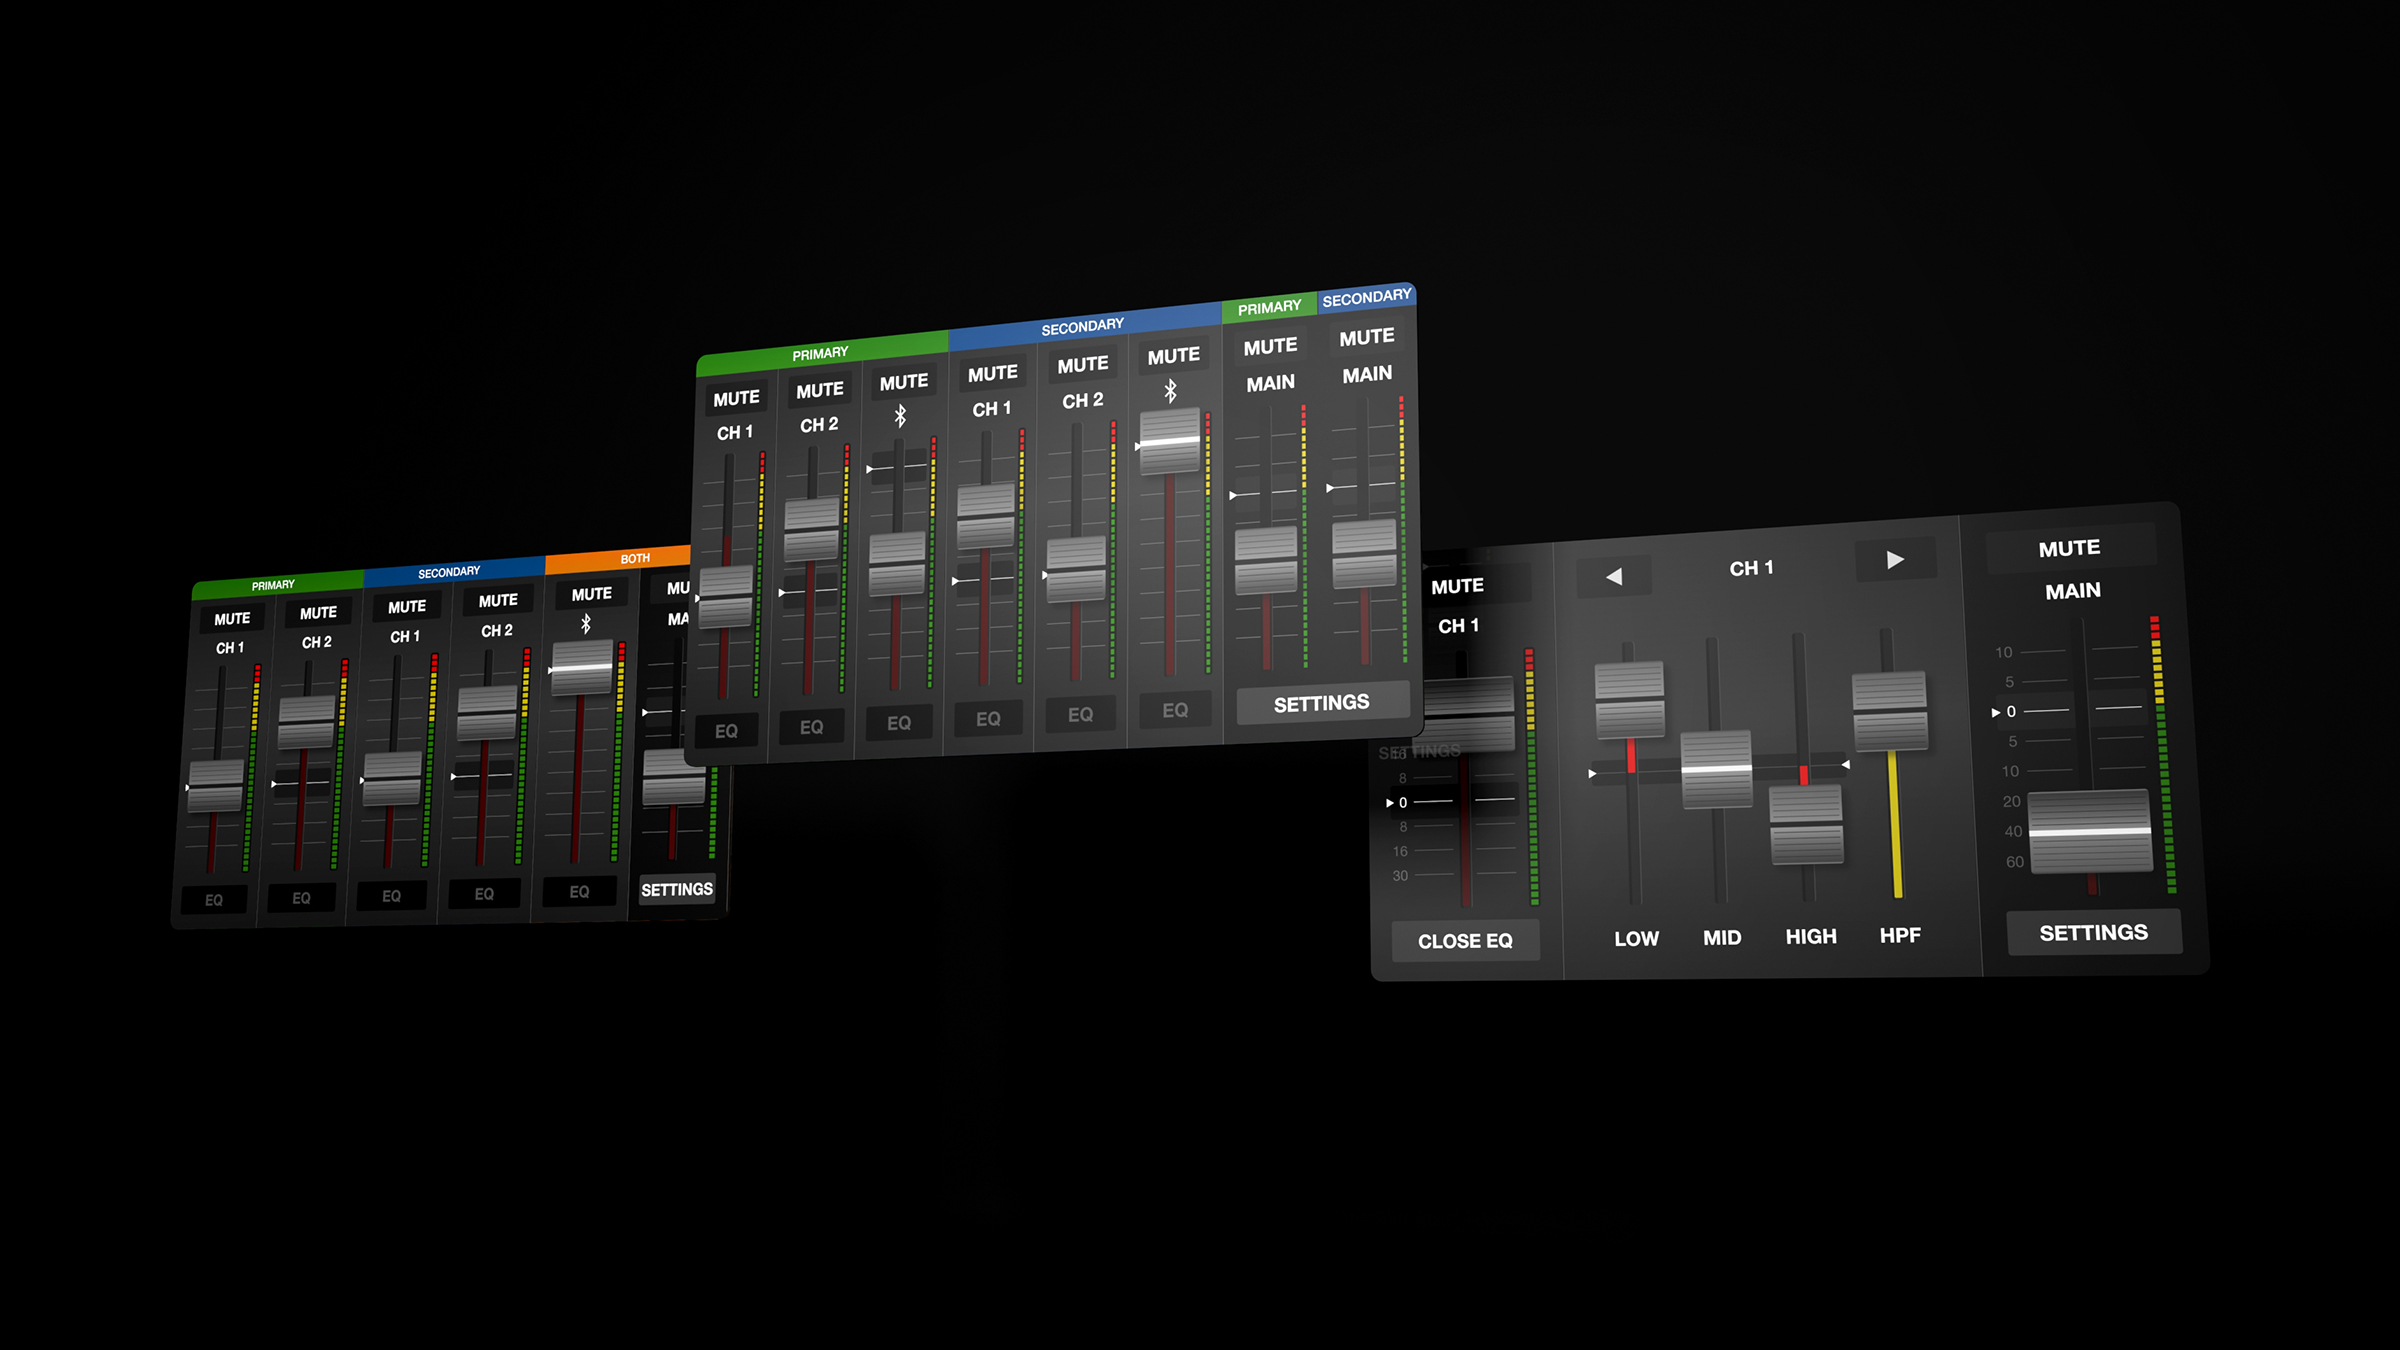 The software allows for multiple zone control and therefore we required a number of different fader screen designs for each format and eventuality.